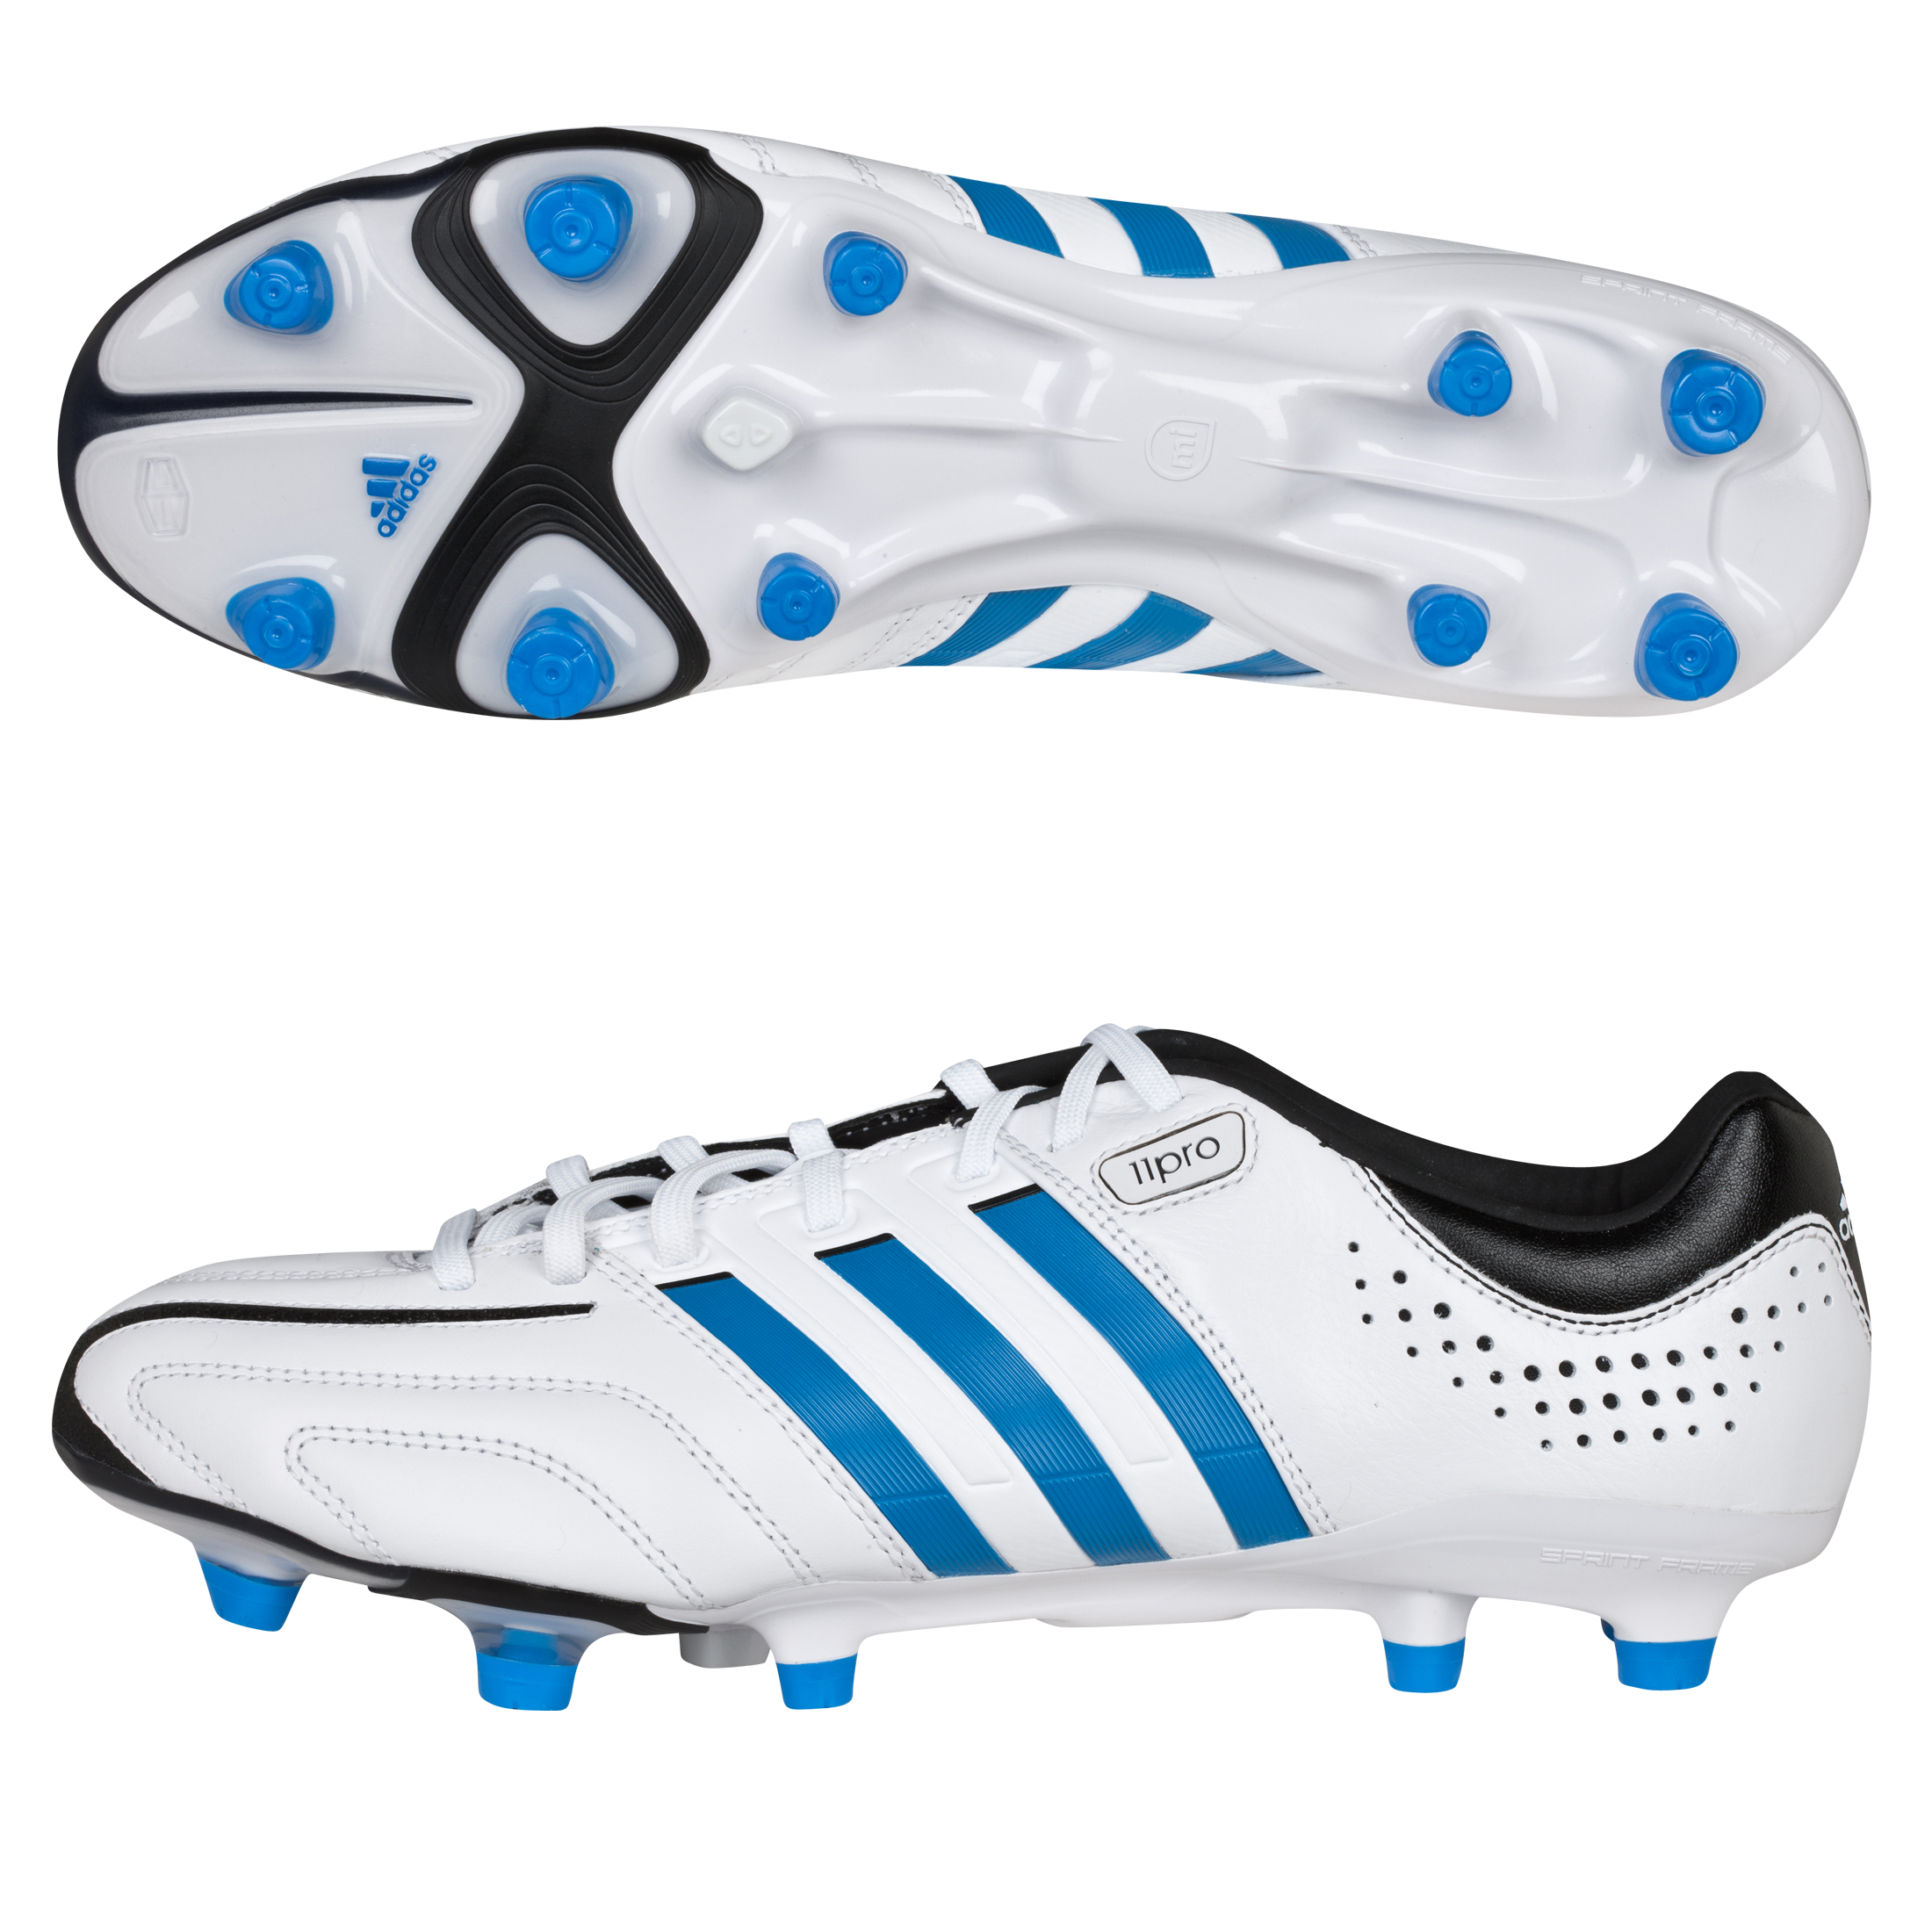 Adidas Adipure 11Pro TRX Football Boots - White/Bright Blue/Black